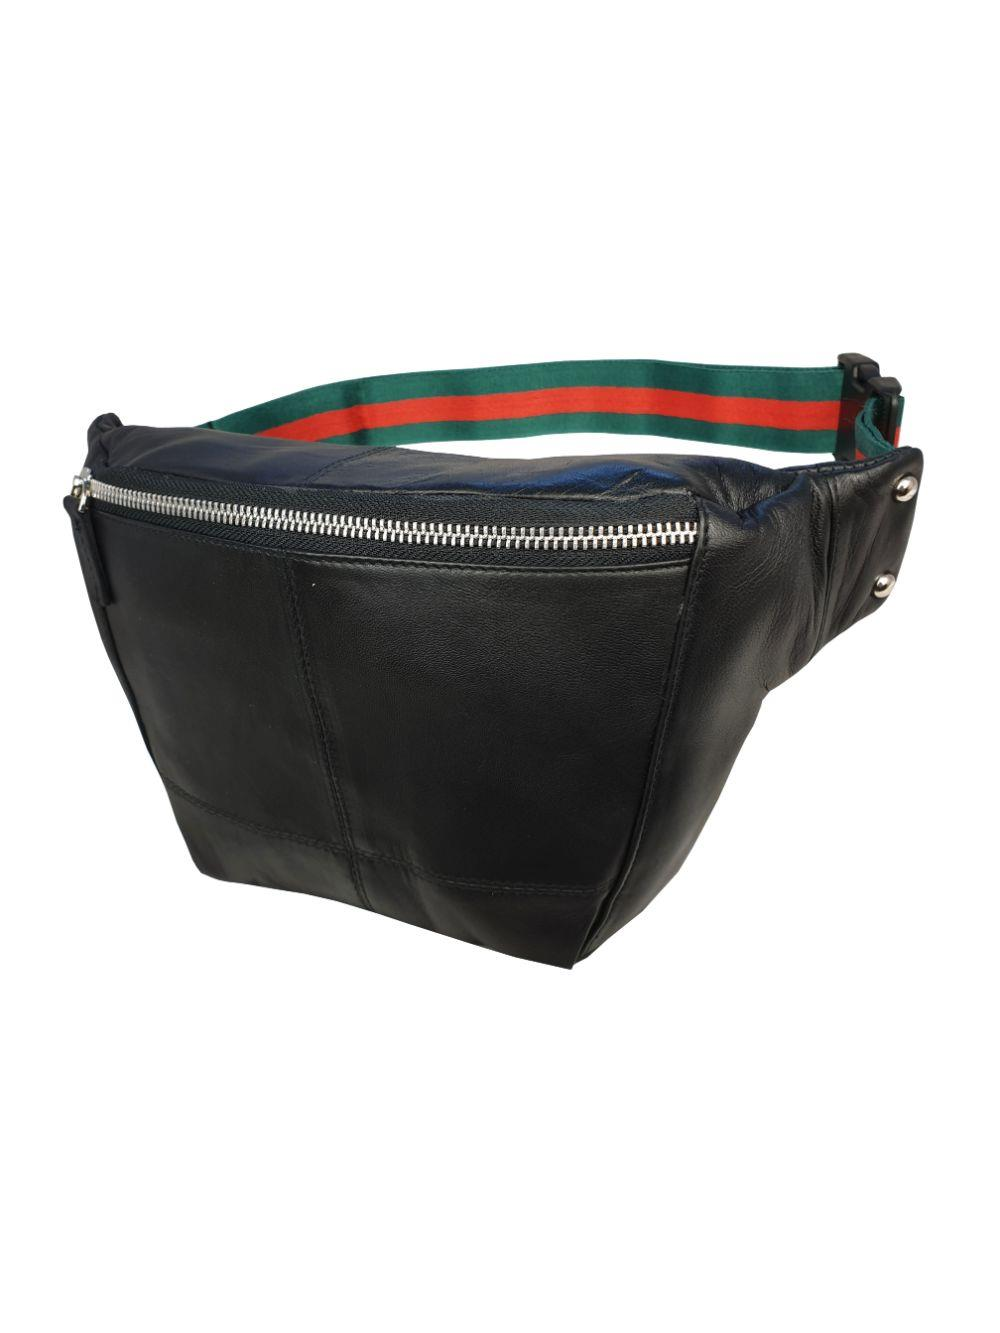 Gucci Style Black Leather Bumbag RL626KGU Side View